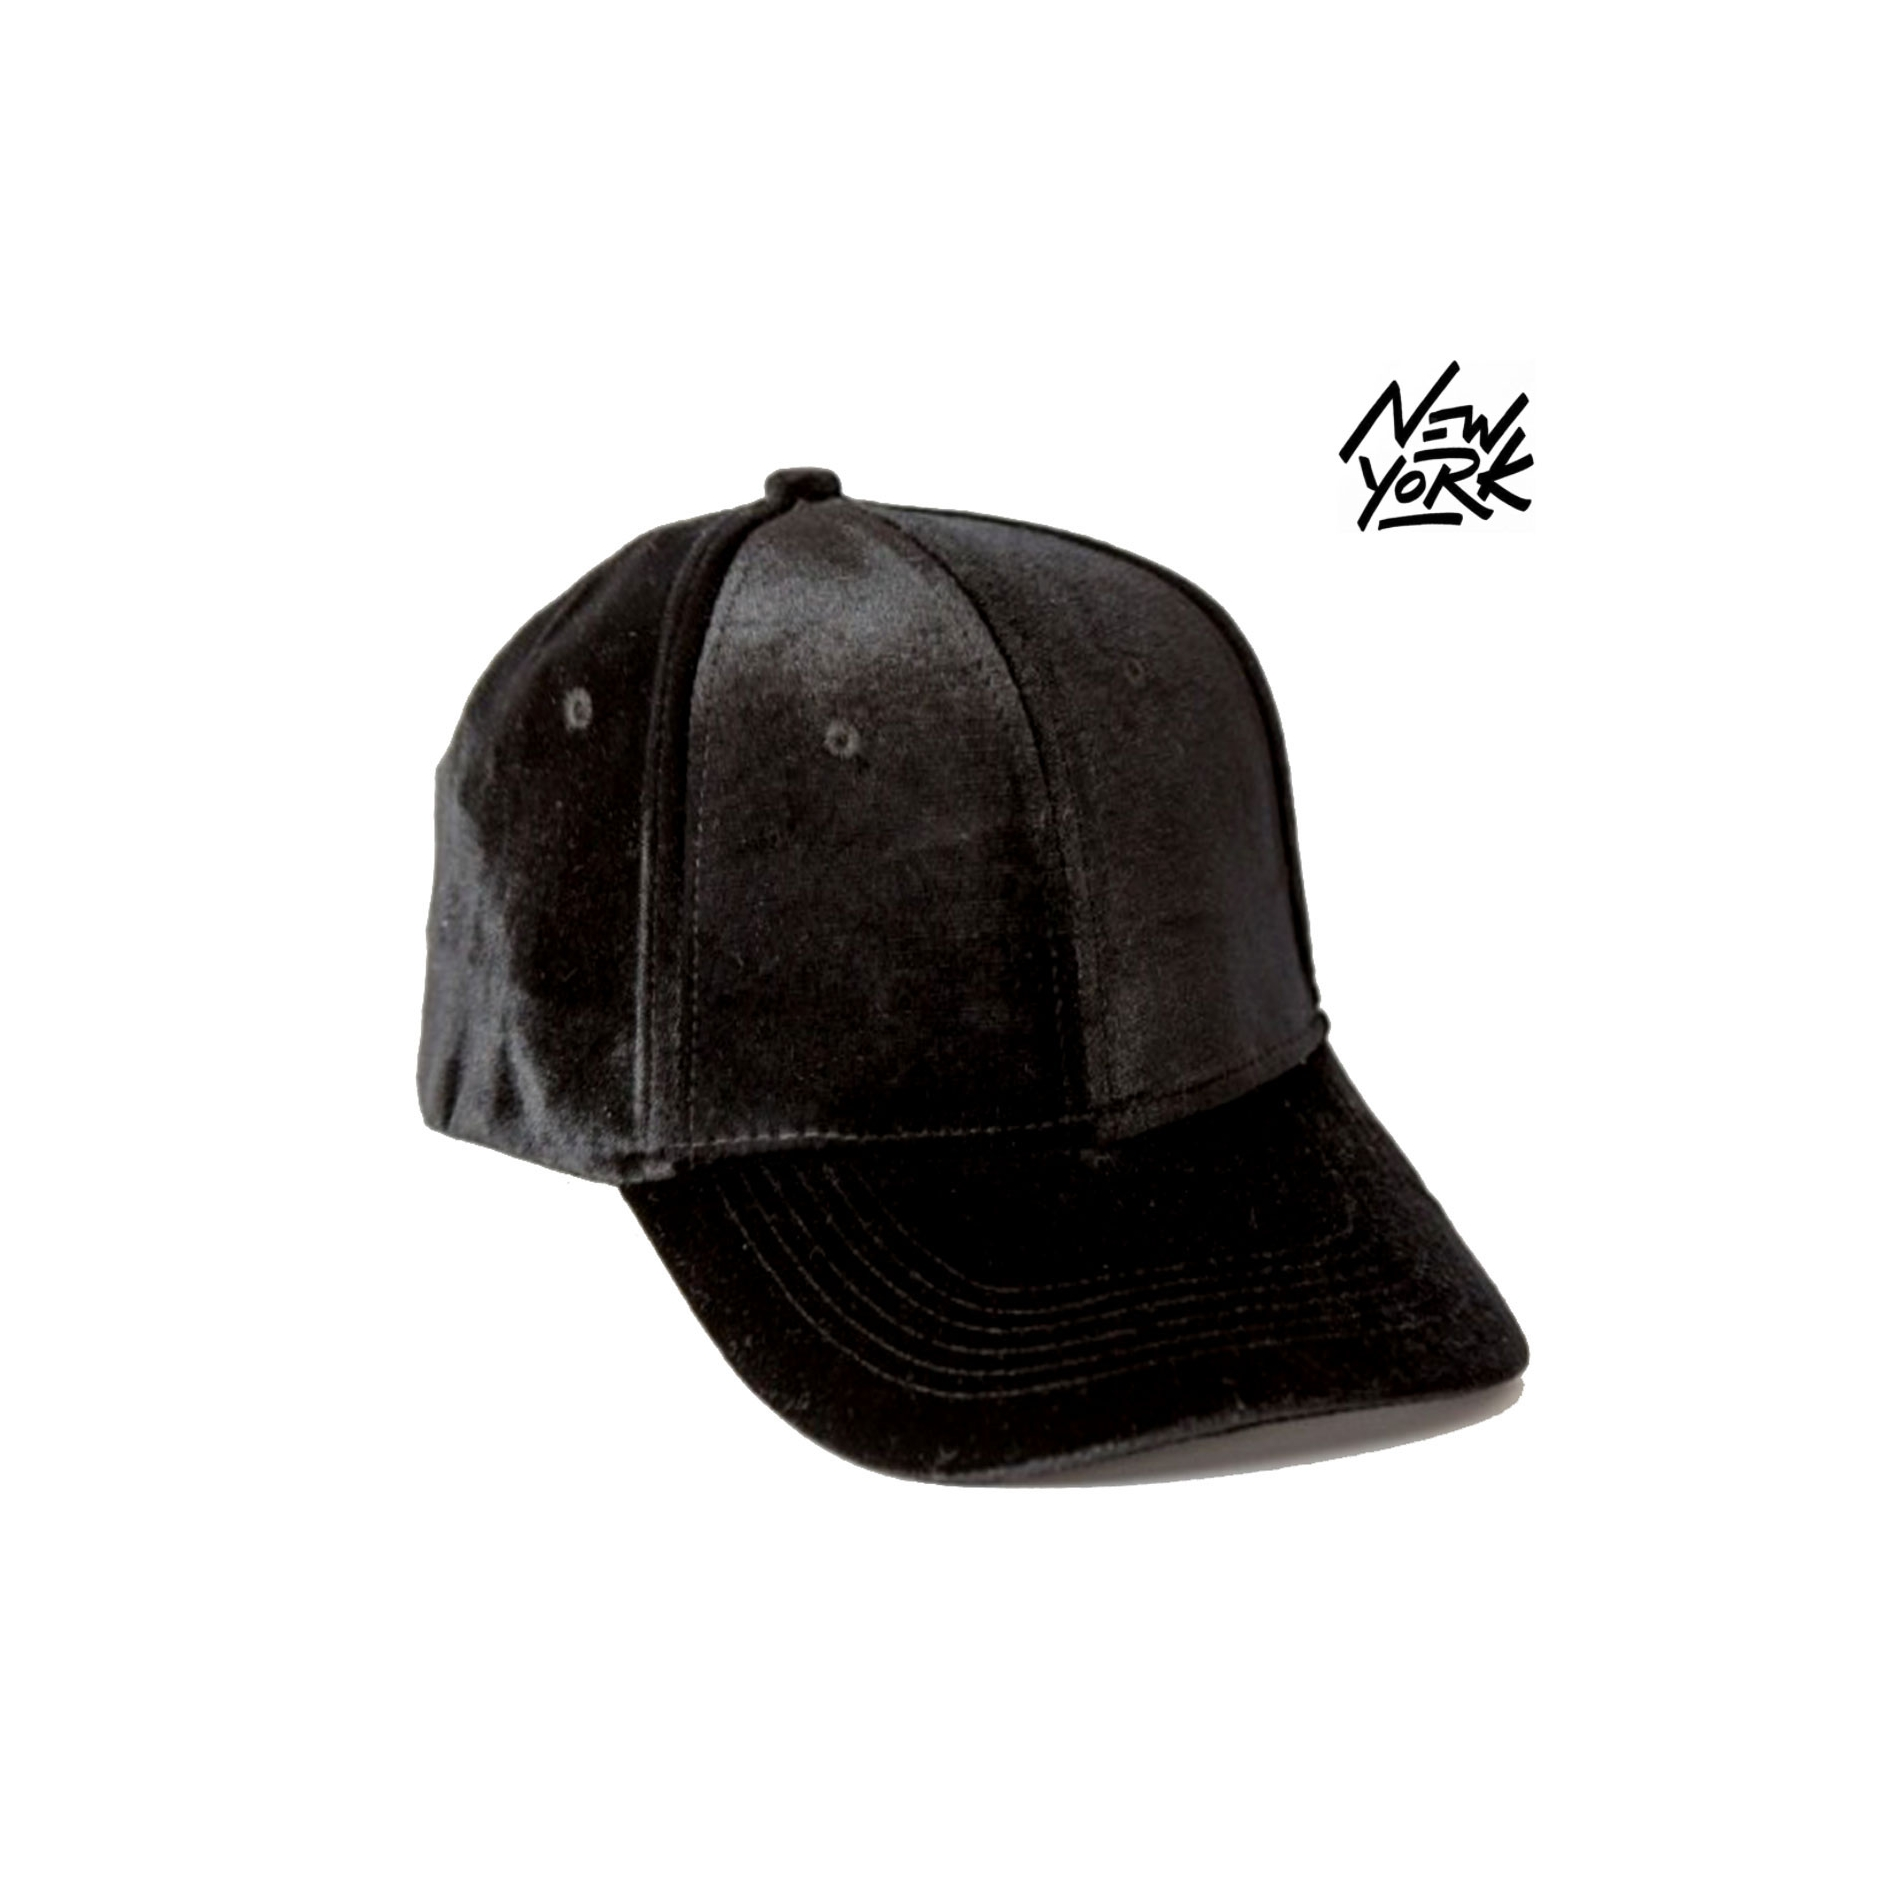 casquette baseball ny new york noir style velours velvet snapback. Black Bedroom Furniture Sets. Home Design Ideas